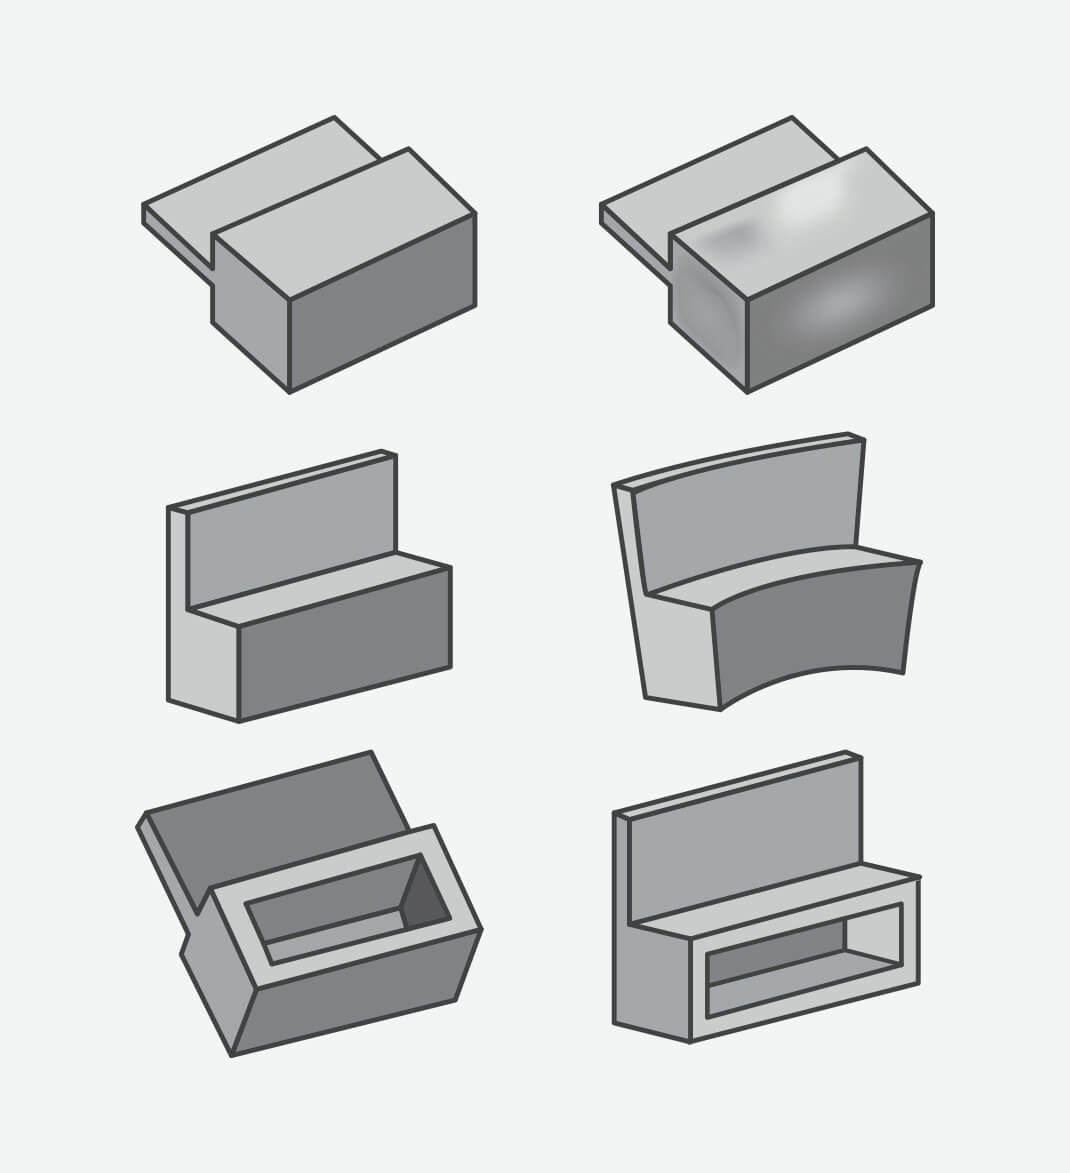 The top row represents a part designed with thick features and the resulting sink once molded. The middle row also shows a part designed with thick features, but this time the warp that occurs once molded. The bottom row demonstrates how coring out thick features helps create an optimally molded part.